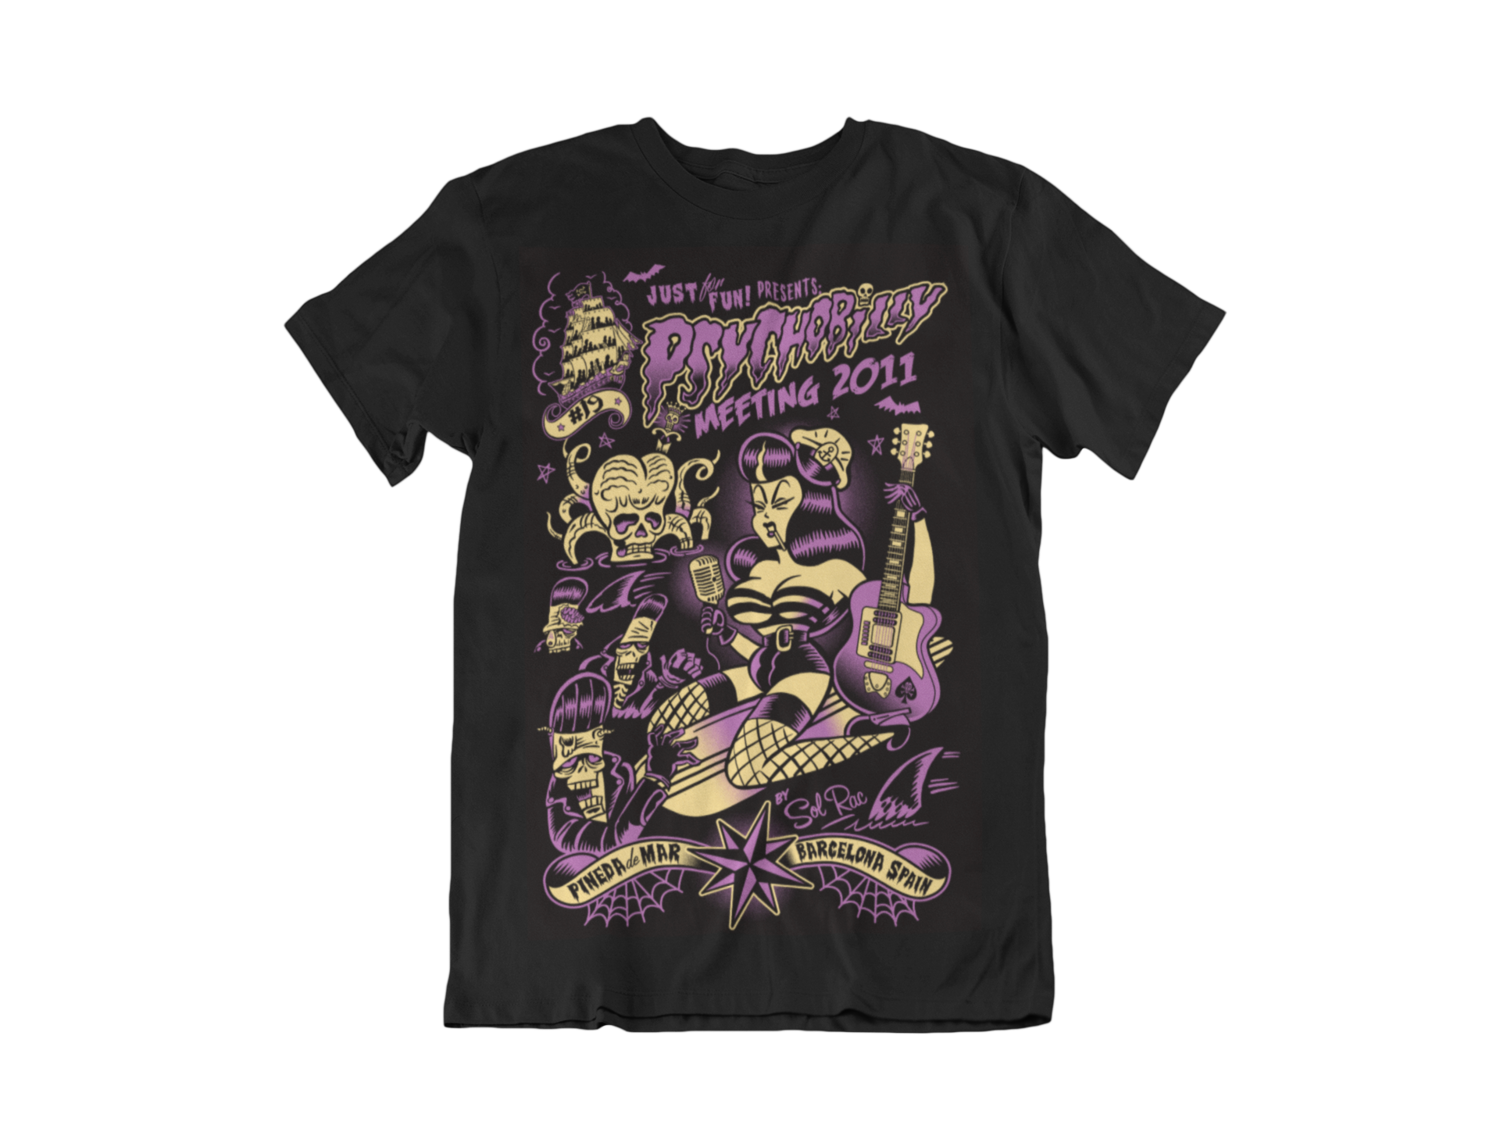 PSYCHOBILLY MEETING 2011 T-SHIRT MEN by SOLRAC